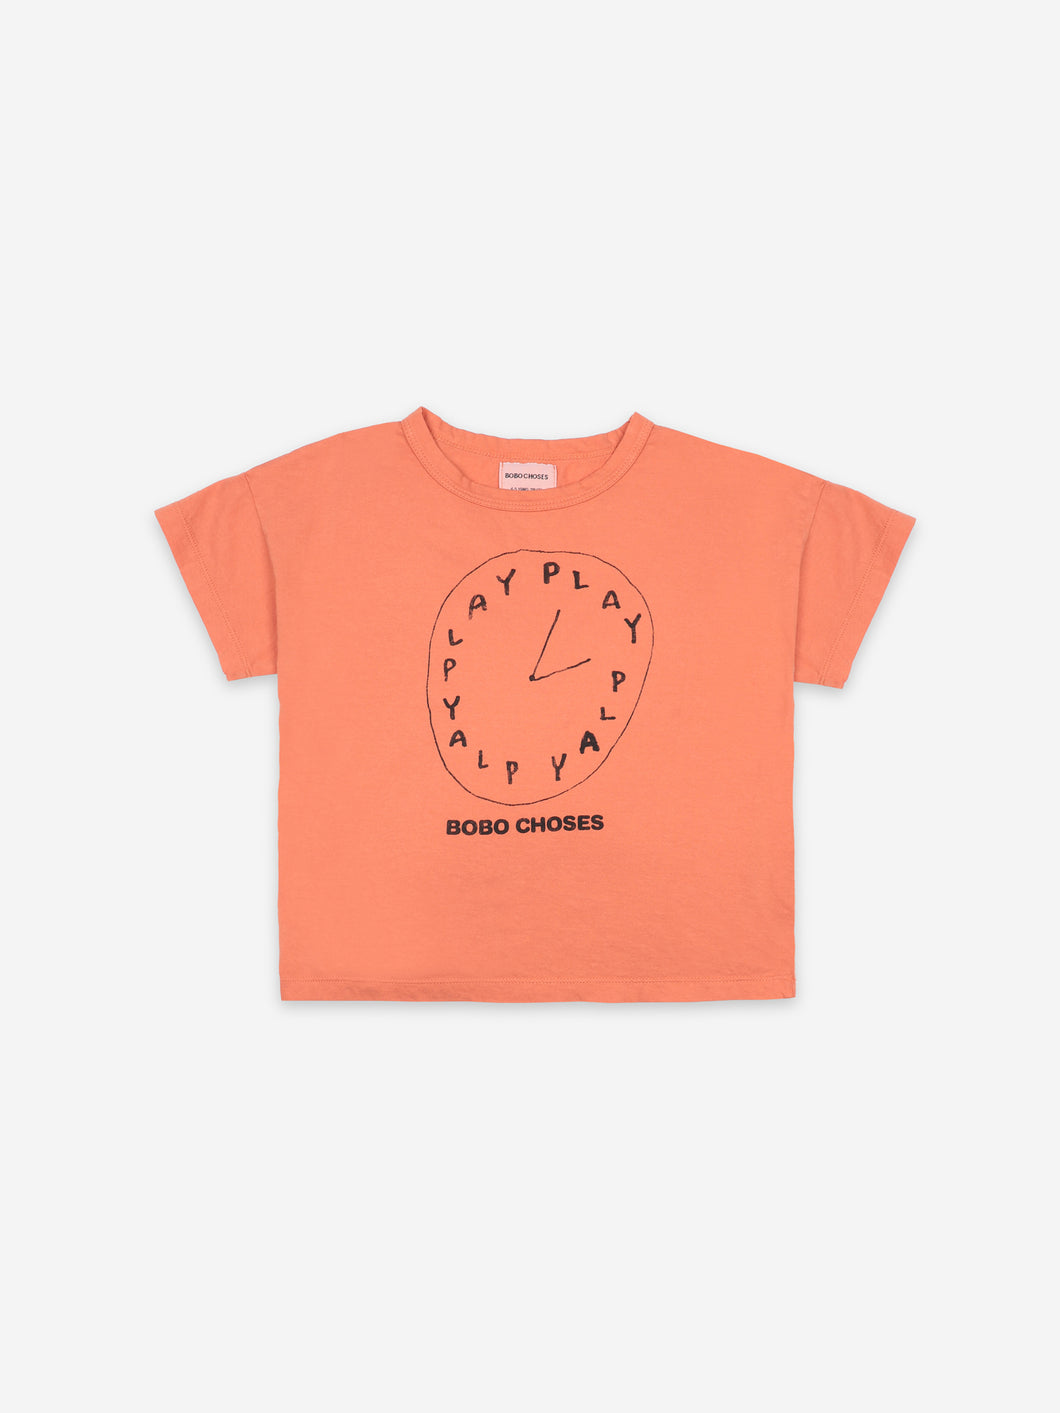 Bobo Choses Playtime Short Sleeve T-Shirt